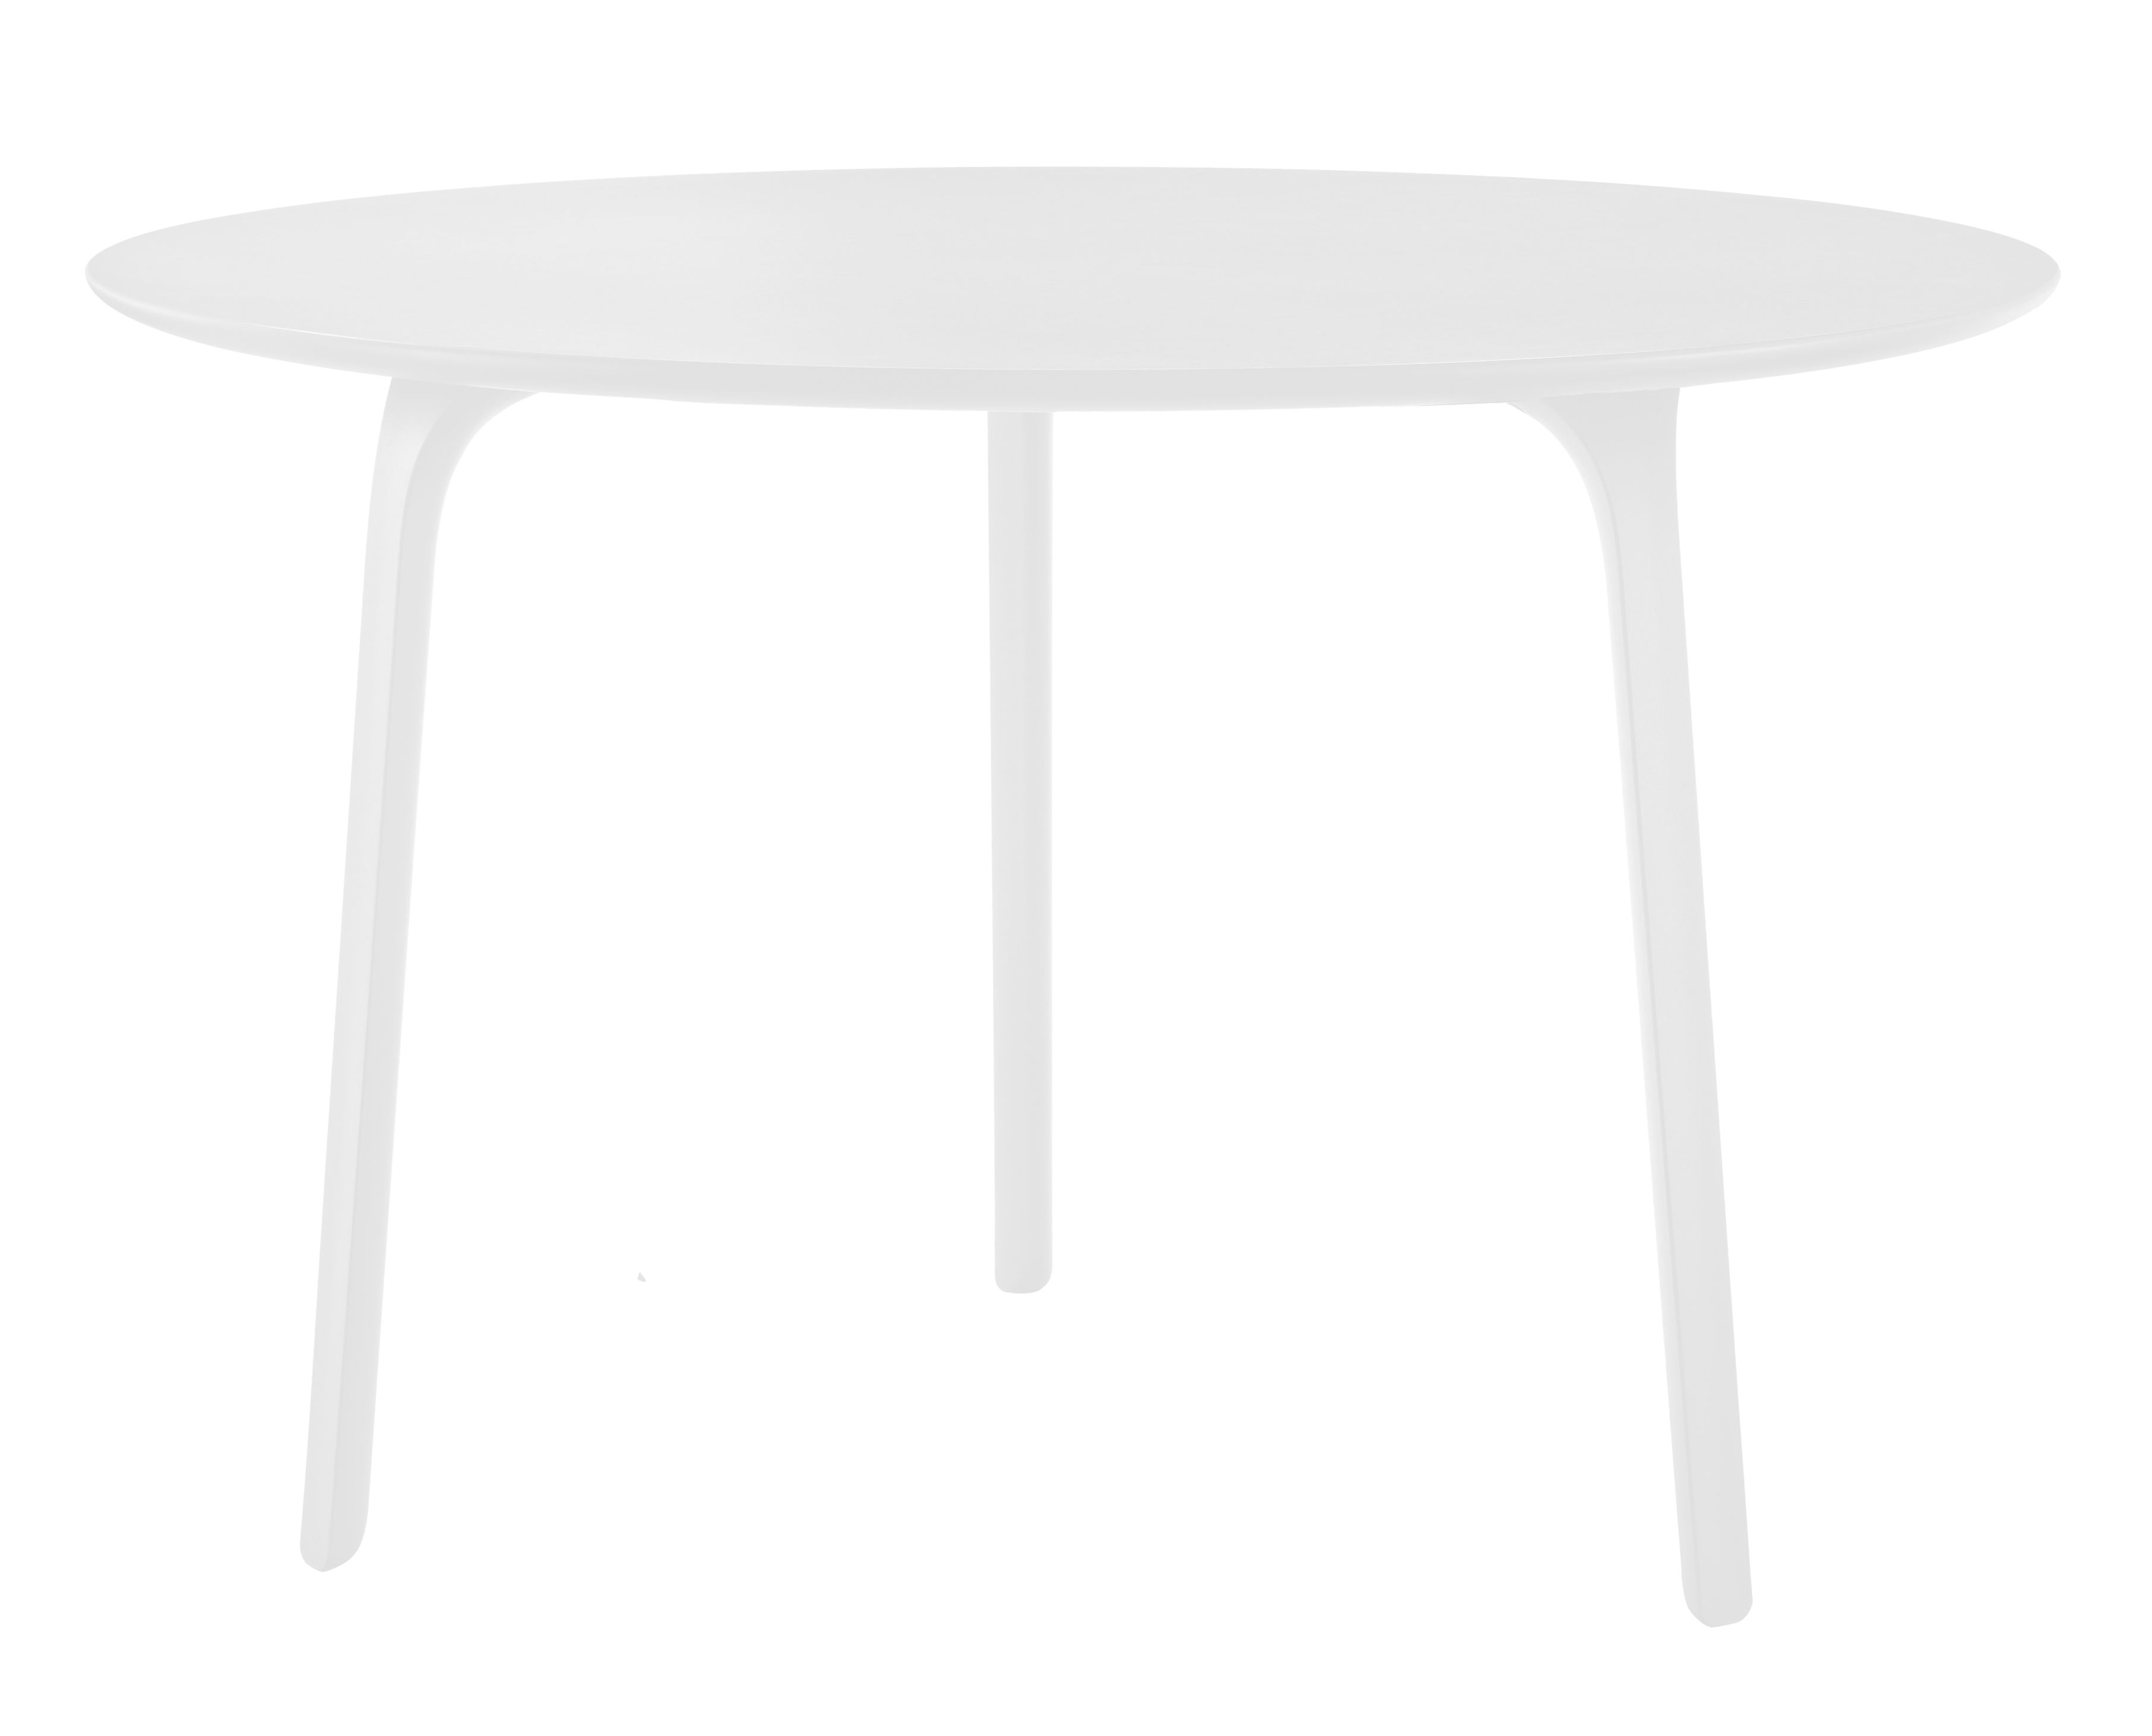 Furniture - Dining Tables - First Round table - Round Ø 80 - Indoor use by Magis - White/ white legs - Polyamide, Varnished MDF